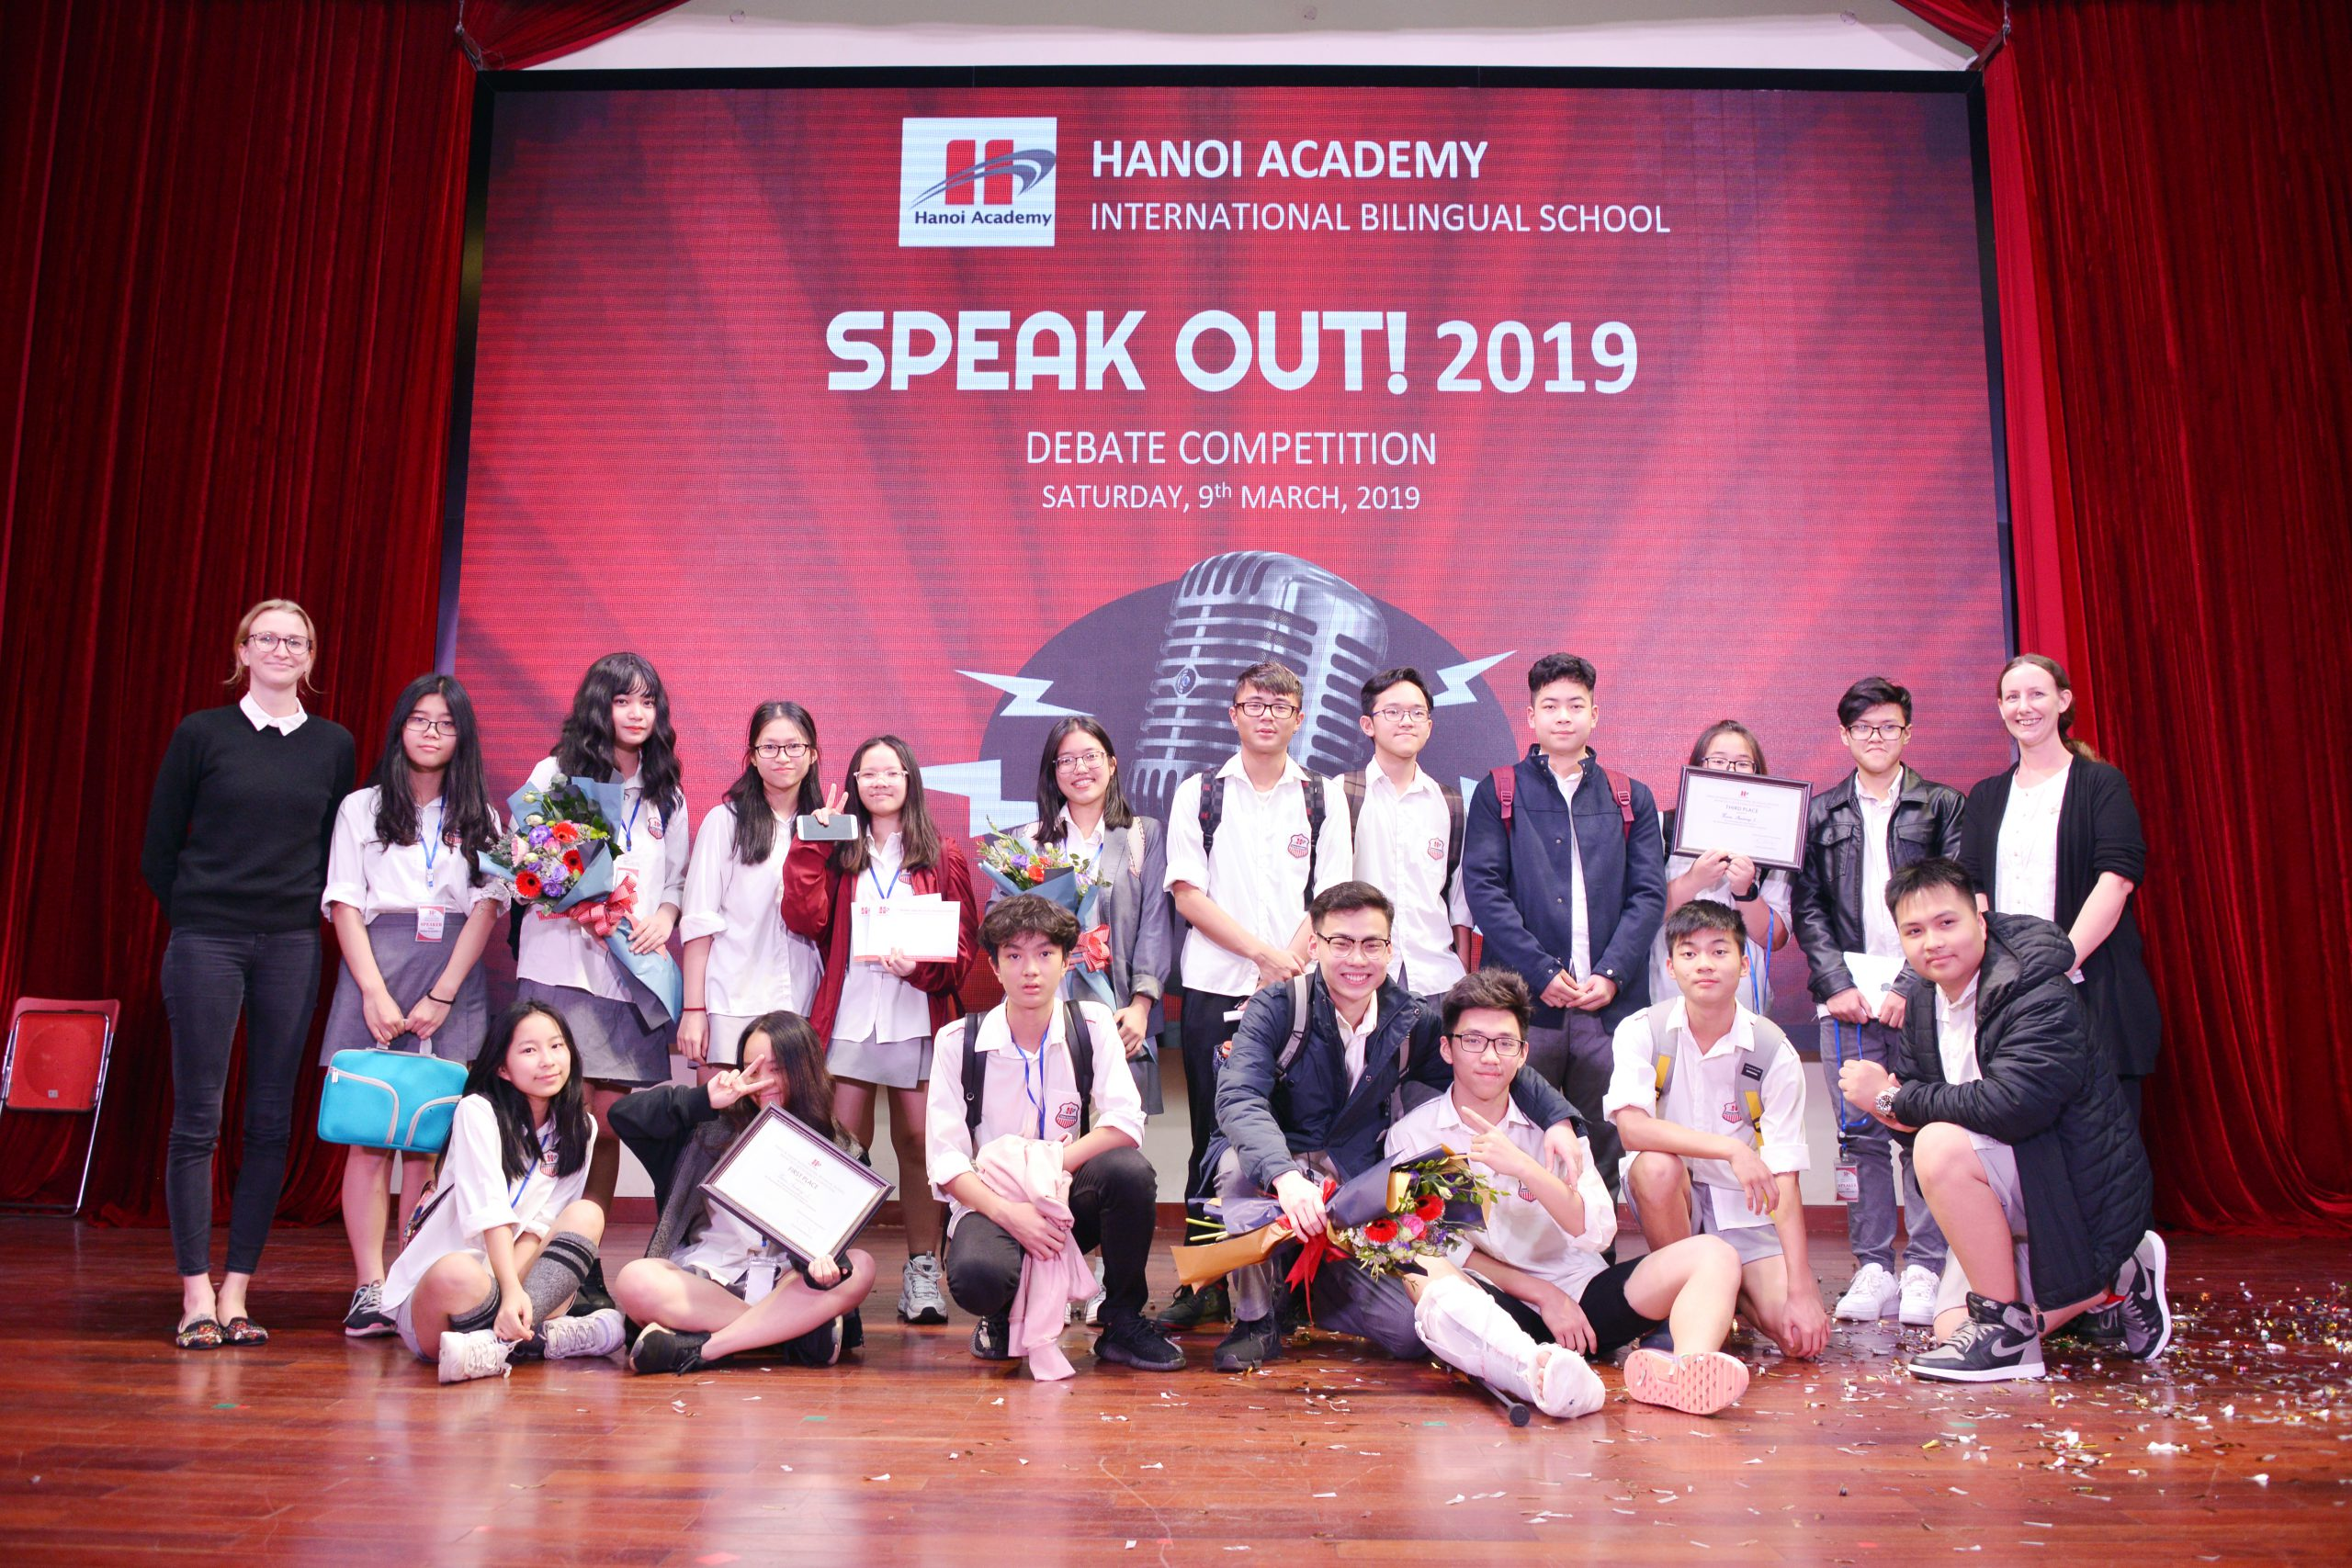 HA's Speak Out 2019